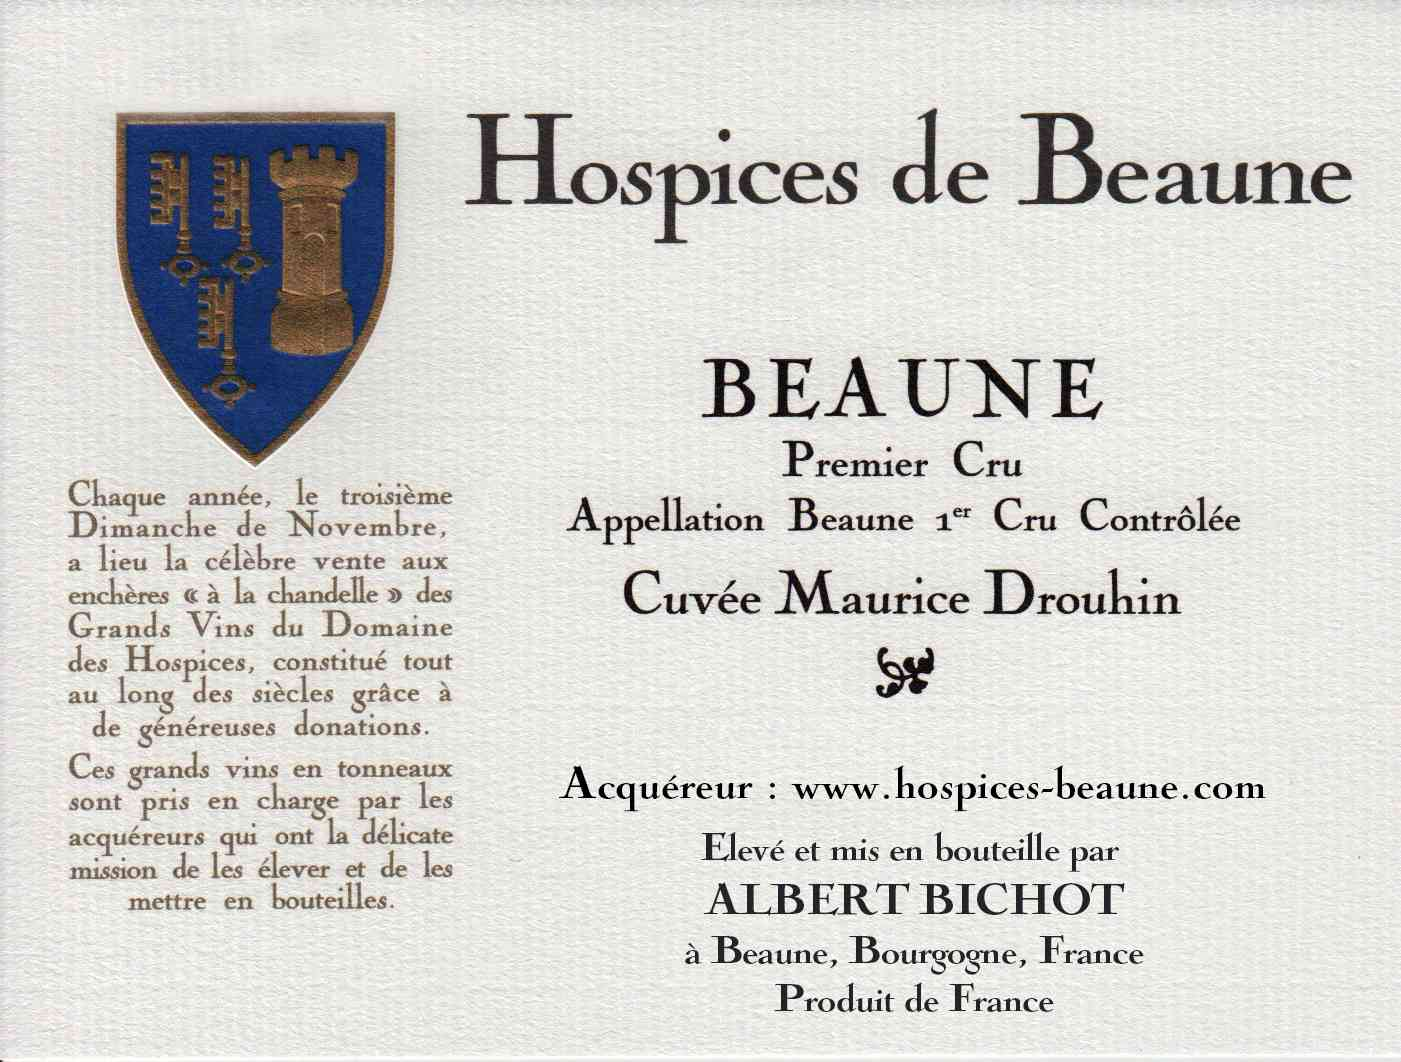 Encheres-auction-HospicesdeBeaune-AlbertBichot-Beaune1erCru-Cuvee-MauriceDrouhin